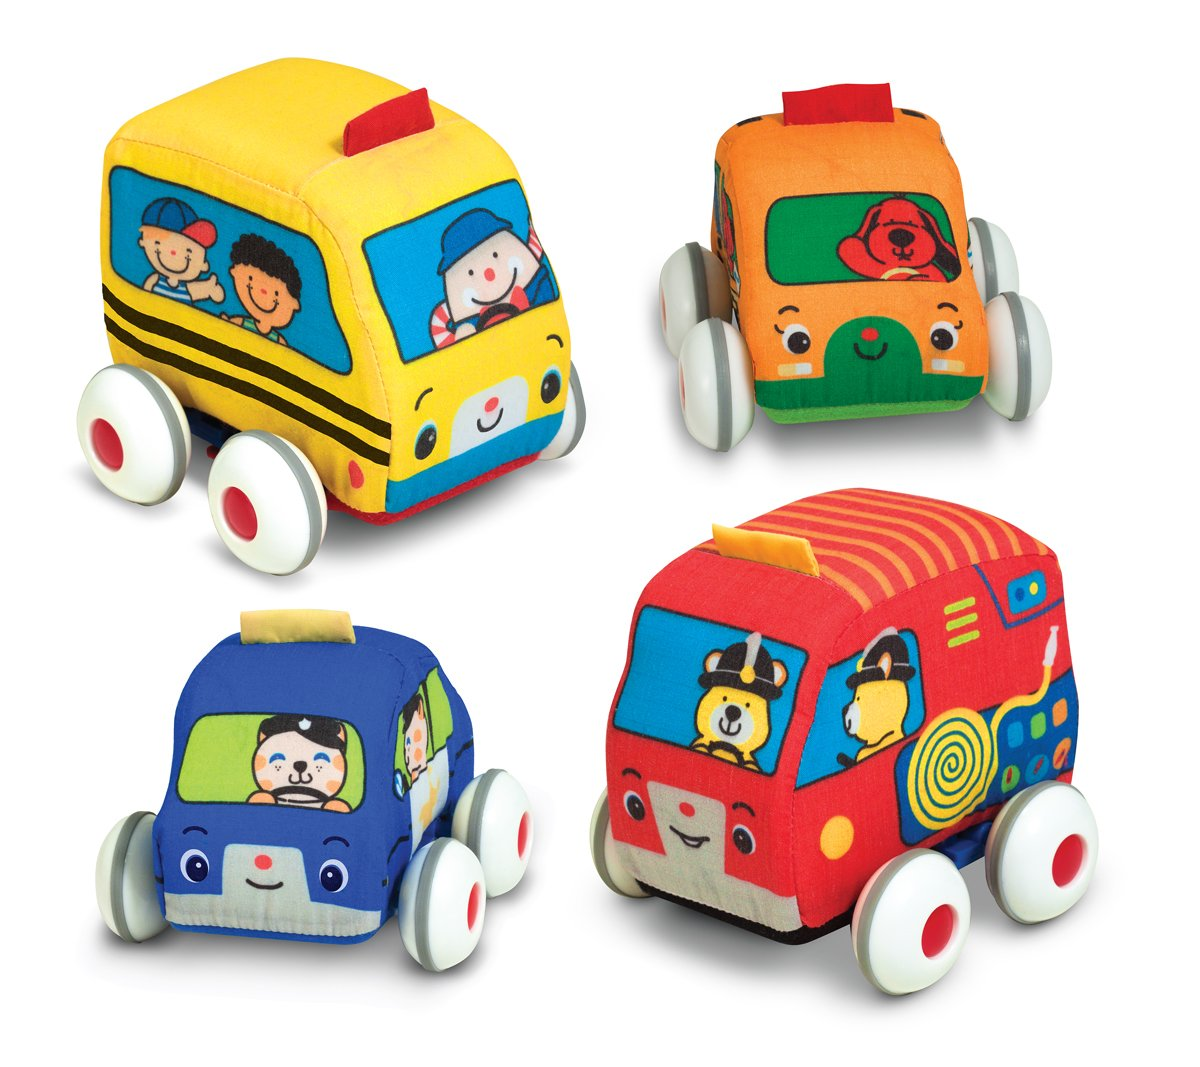 Best Baby Gifts: Soft Pull back cars